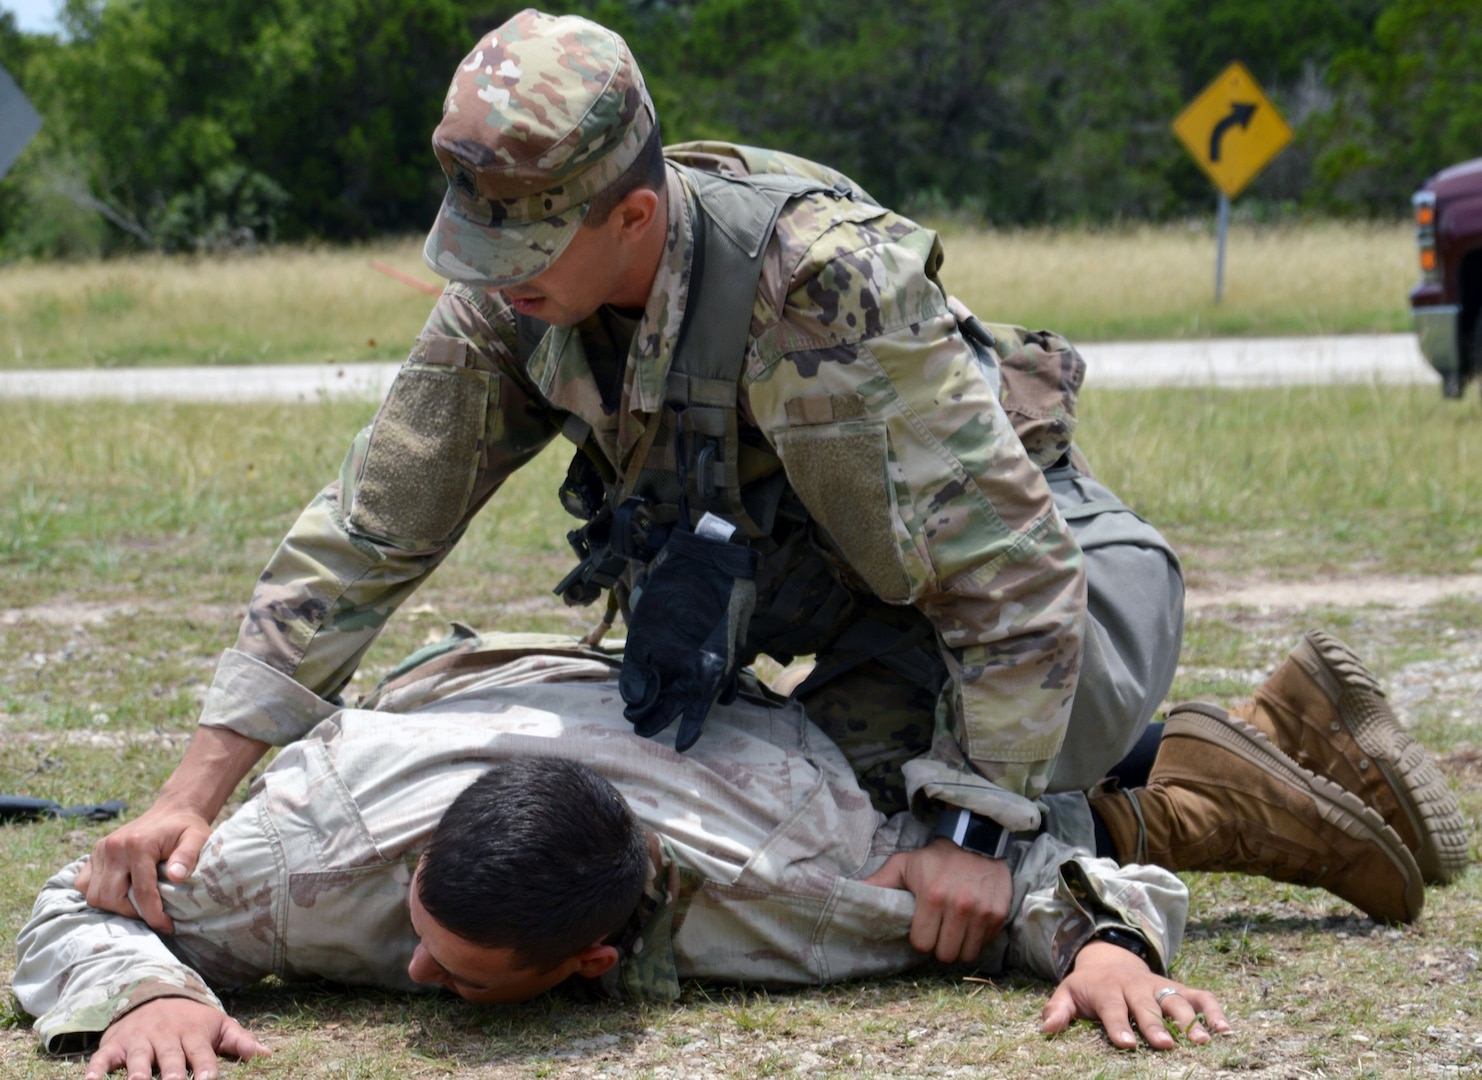 Army Sgt. Kevin Ramirez takes down an aggressor during the tactical road march portion of the Brooke Army Medical Center Best Medic Competition at Joint Base San Antonio-Camp Bullis June 12. The competitors were tested on both warrior and medic skills during the competition.